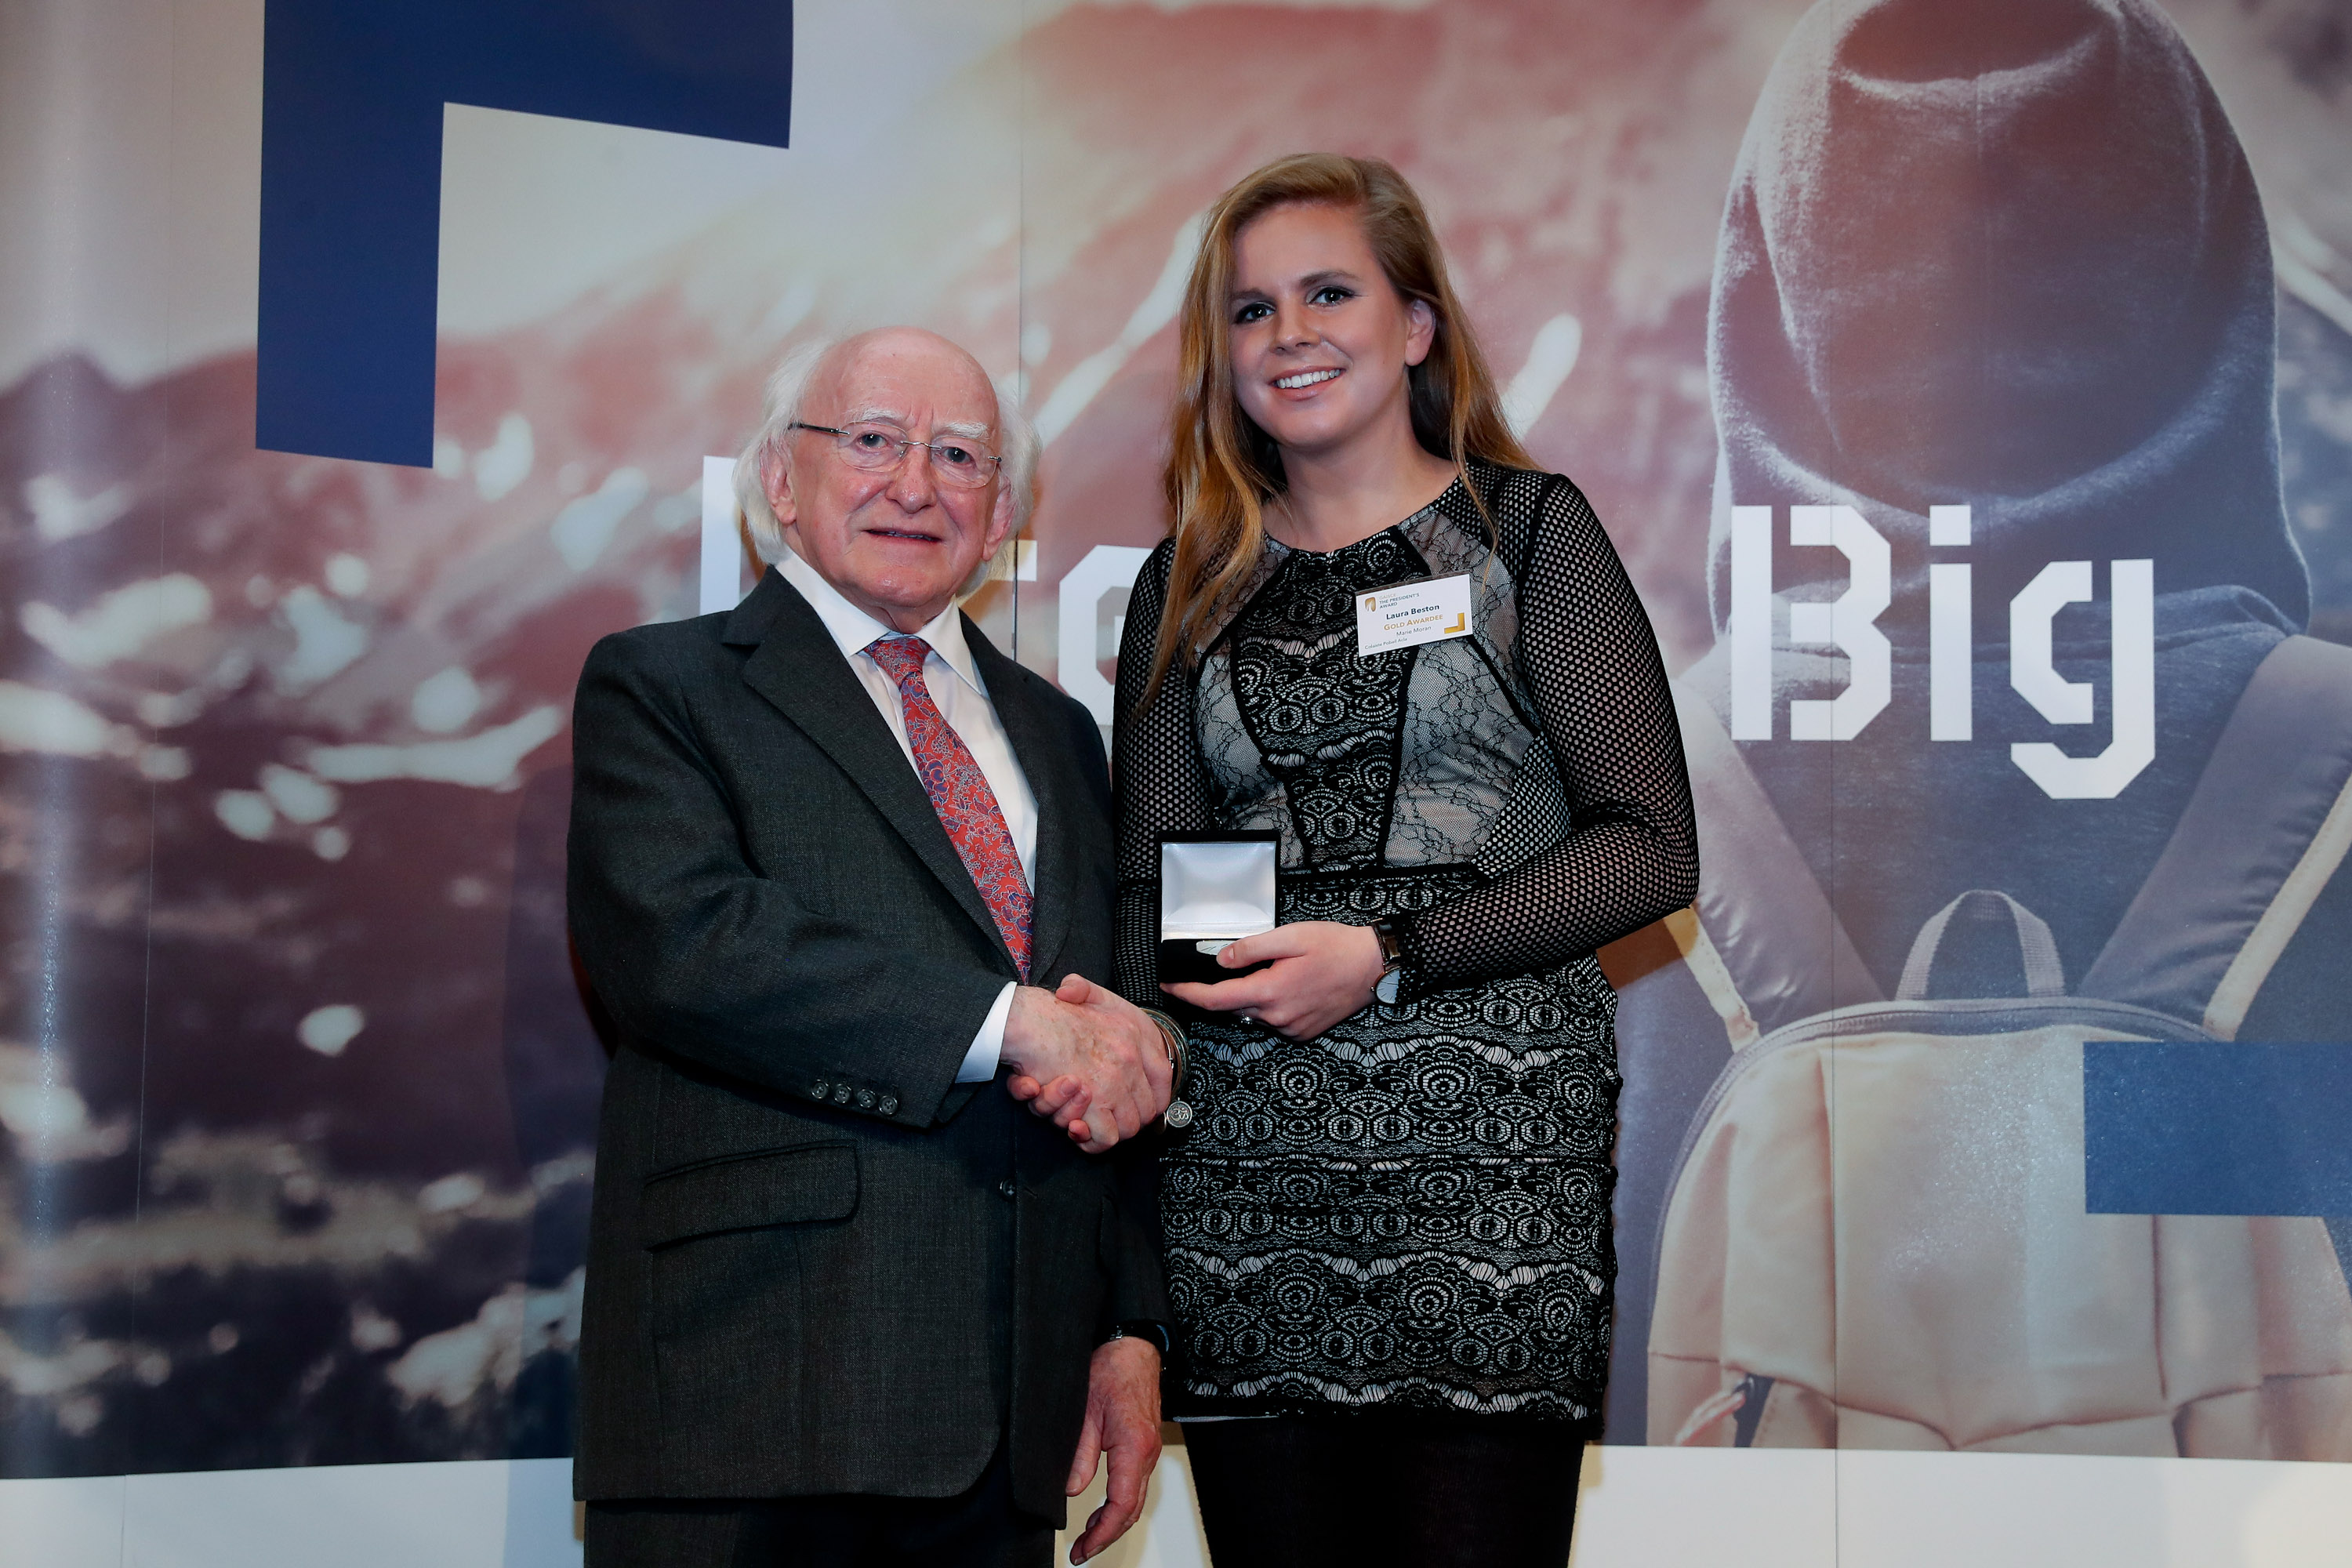 Local girl Laura wins Gaisce Award